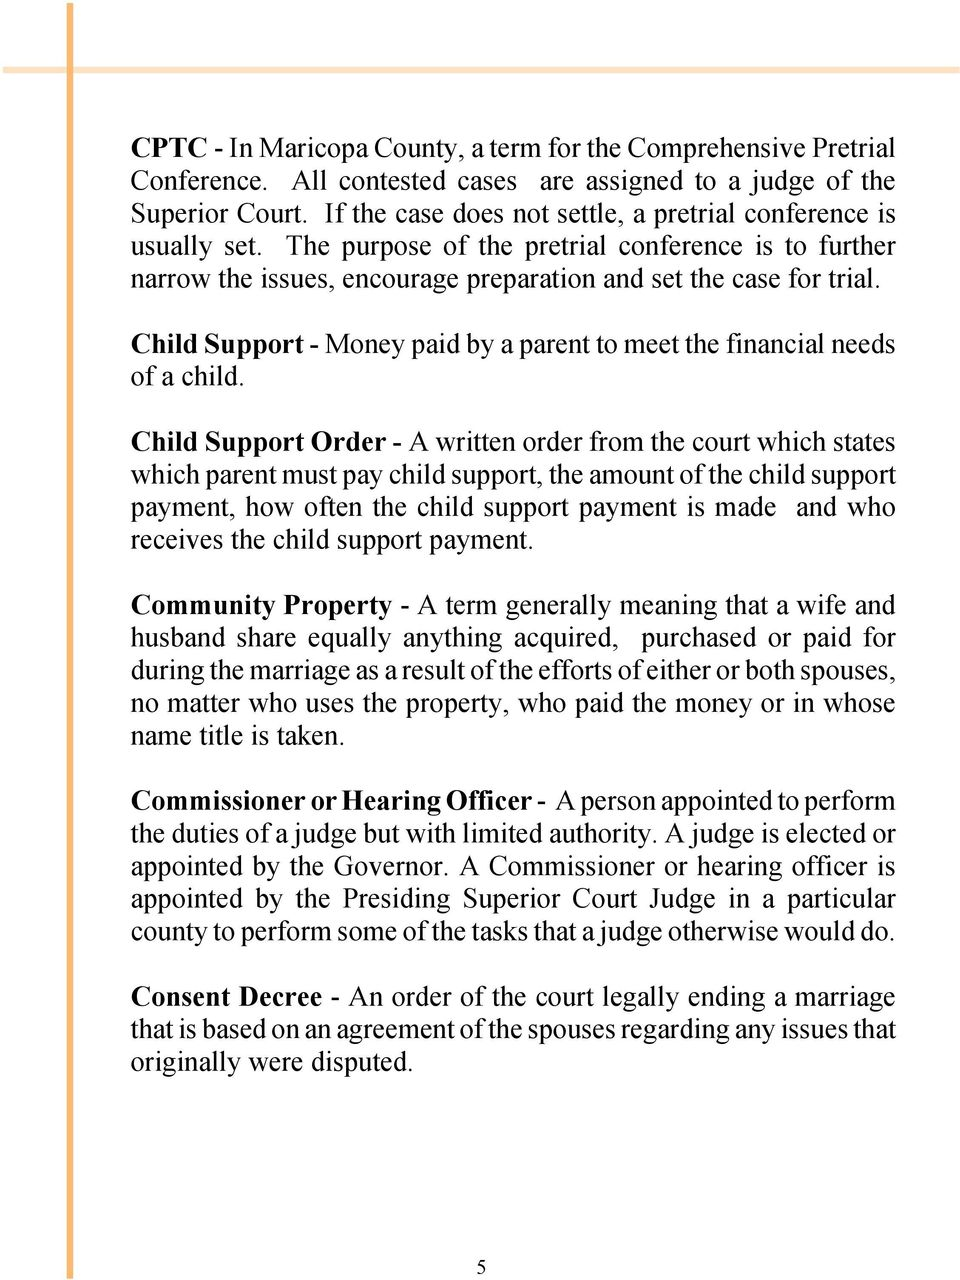 Child Support - Money paid by a parent to meet the financial needs of a child.